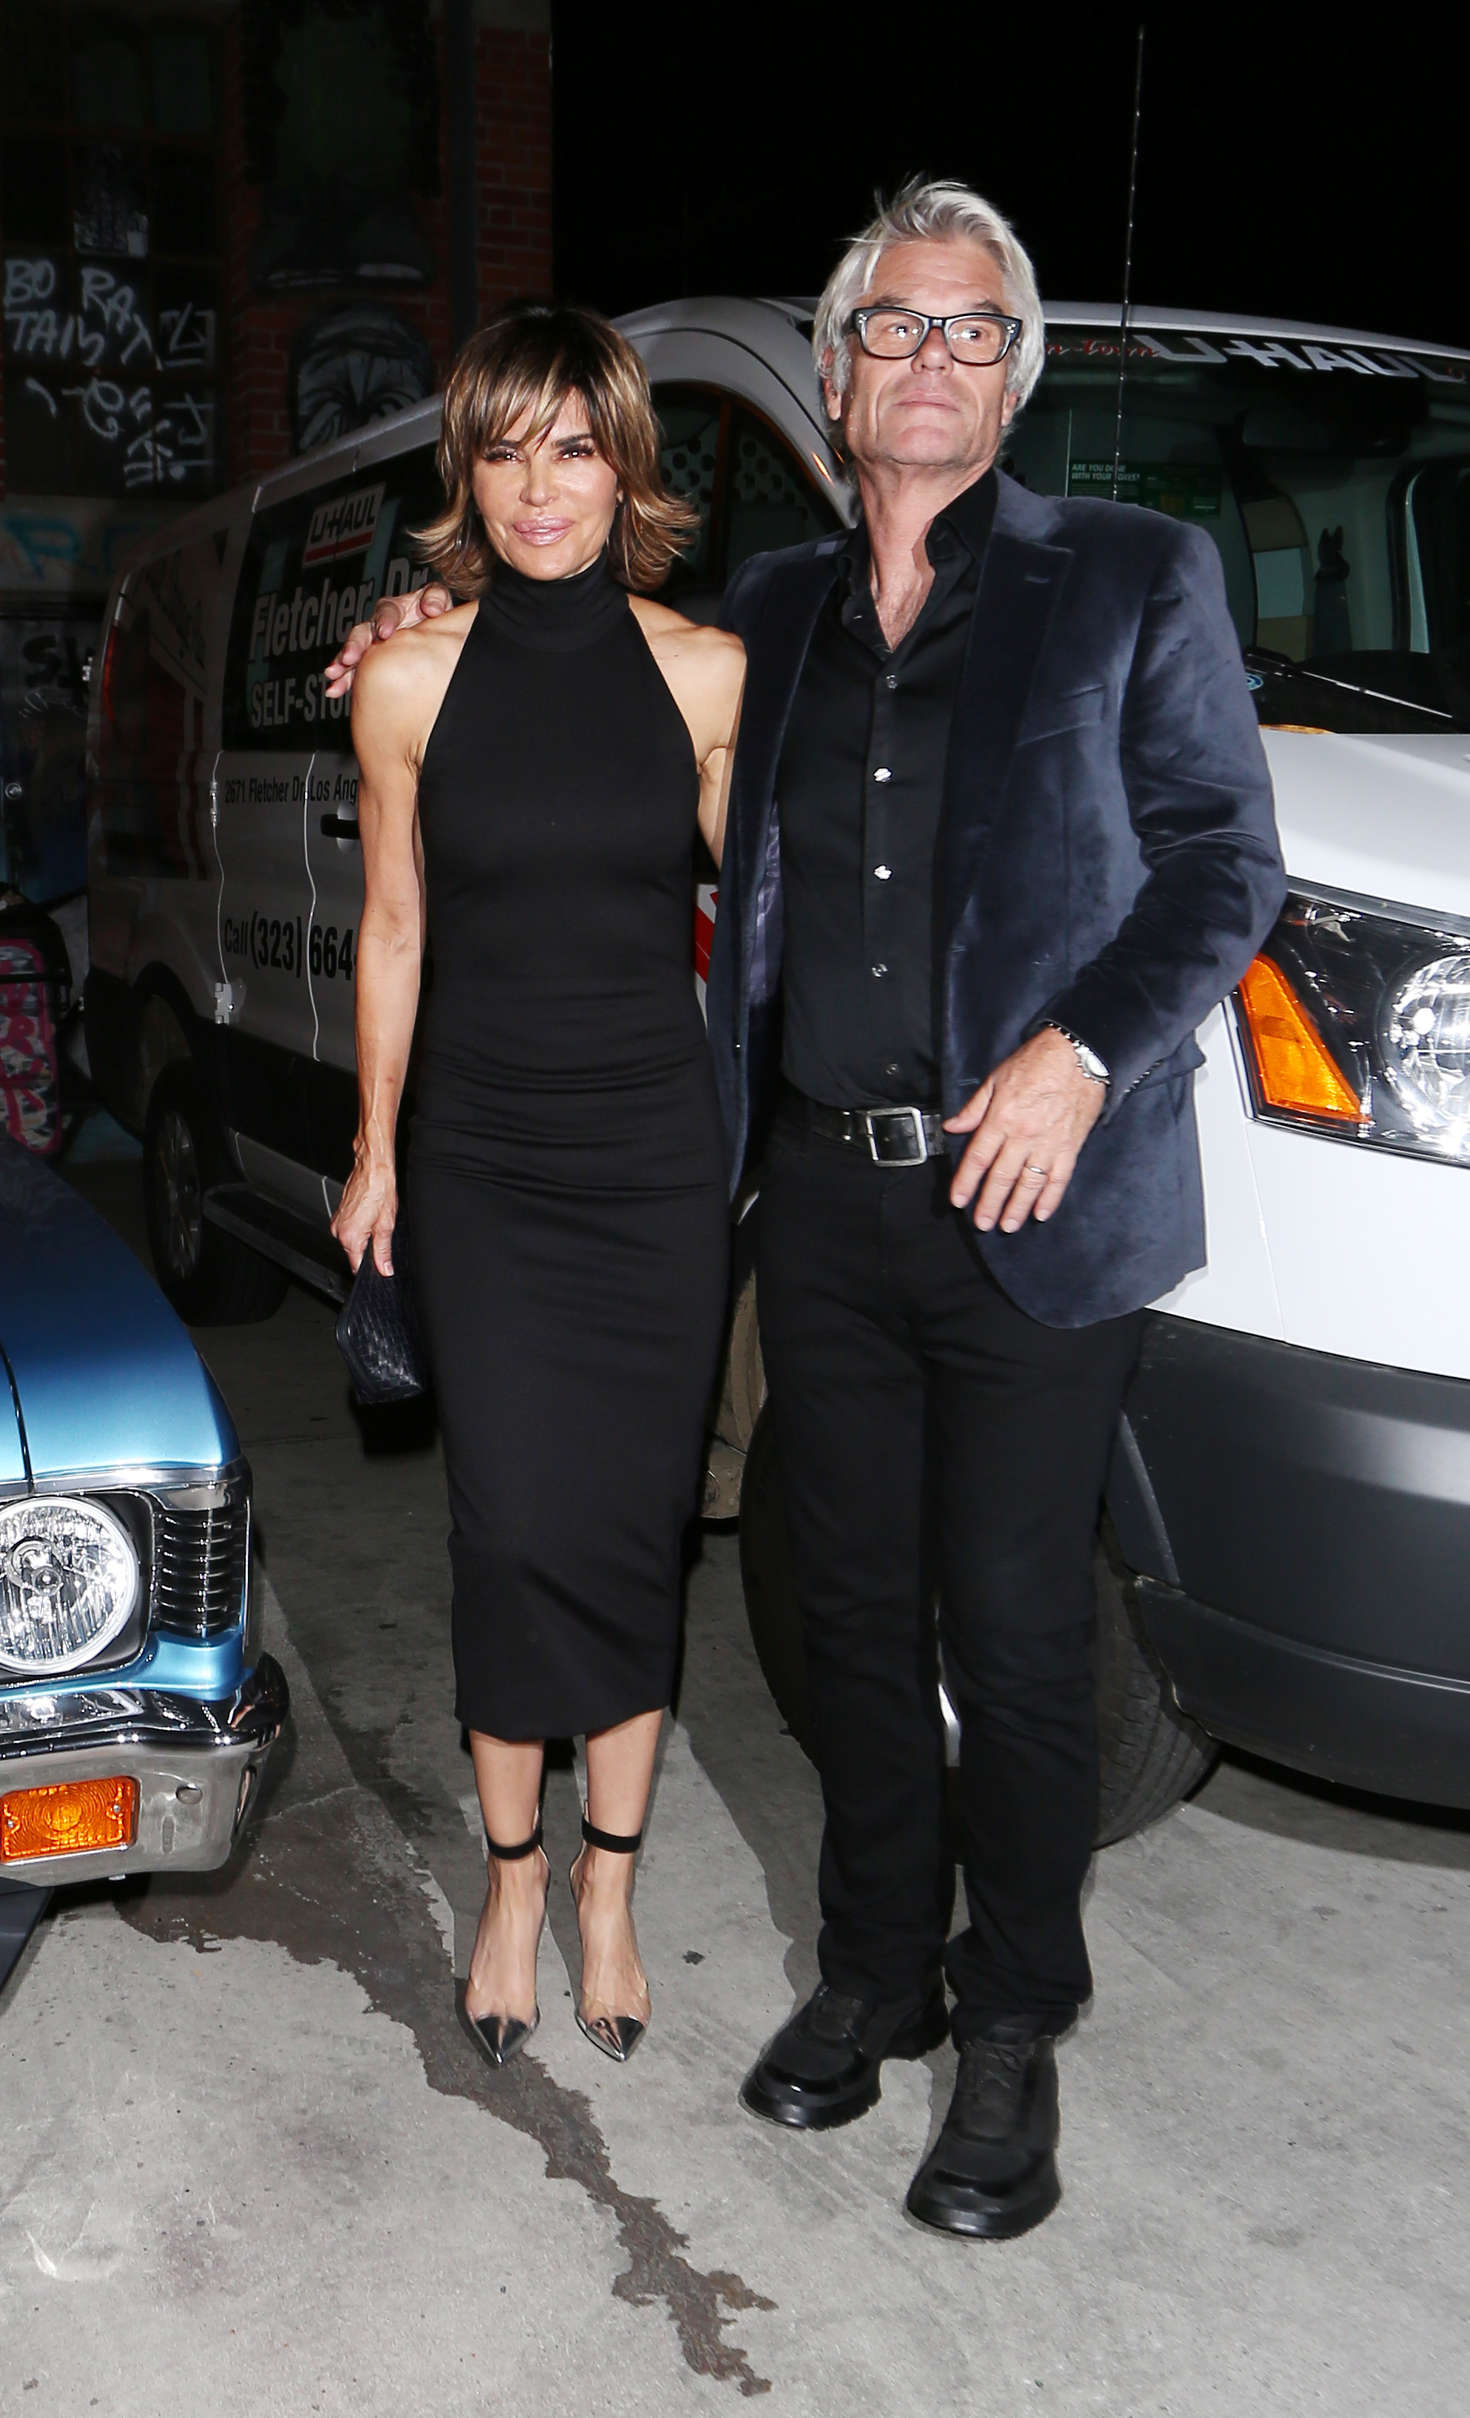 Lisa Rinna at Lady Gagas Birthday Party in Los Angeles